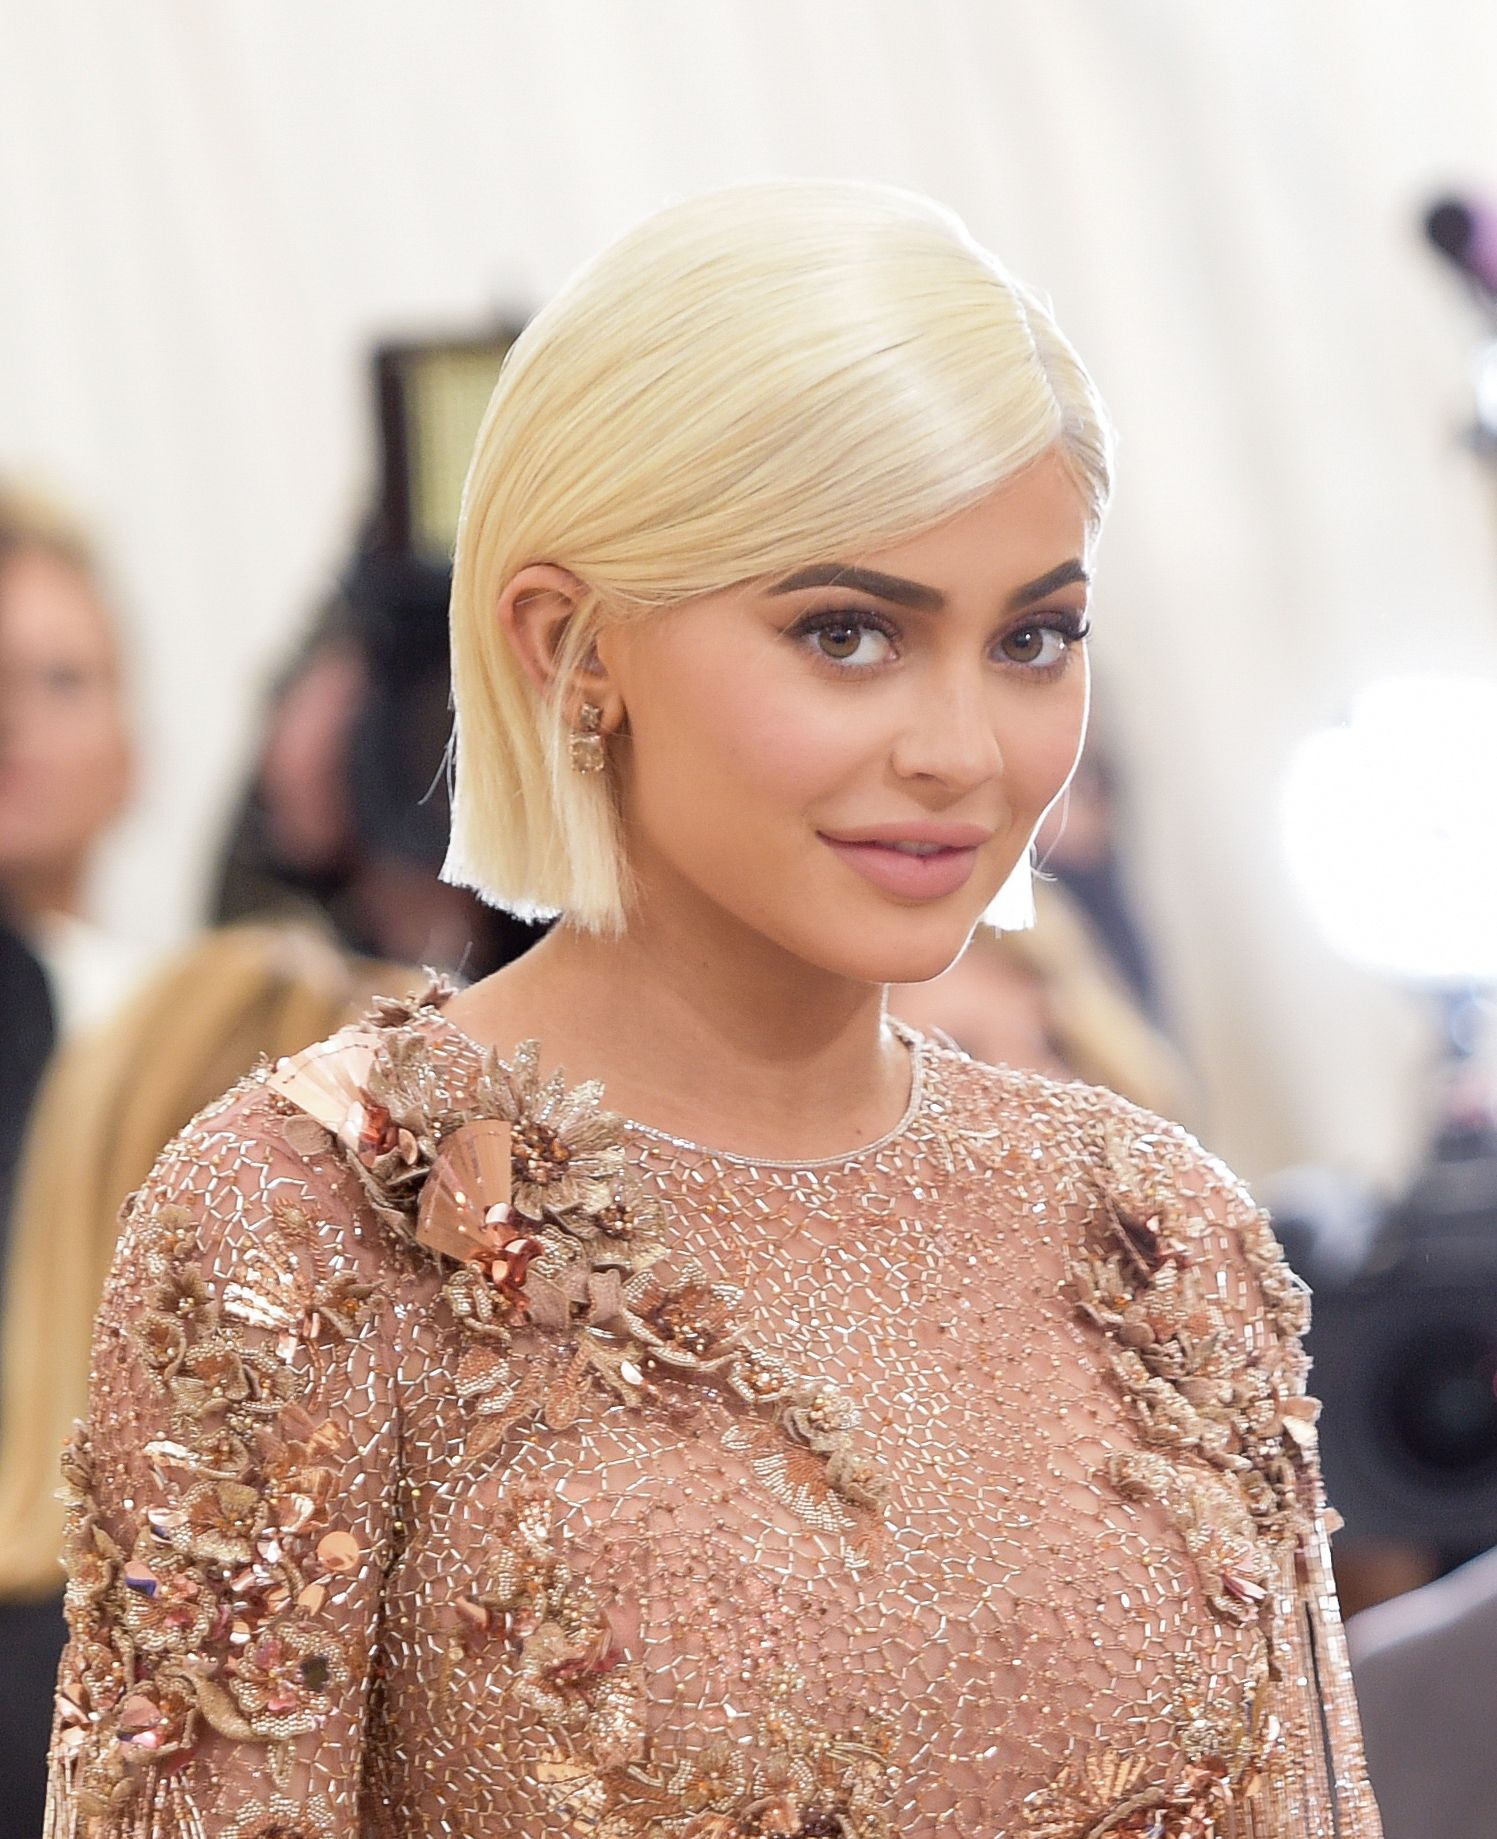 """Kylie Jenner at the """"Rei Kawakubo/Comme des Garcons: Art Of The In-Between"""" Costume Institute Gala at Metropolitan Museum of Art on May 1, 2017 